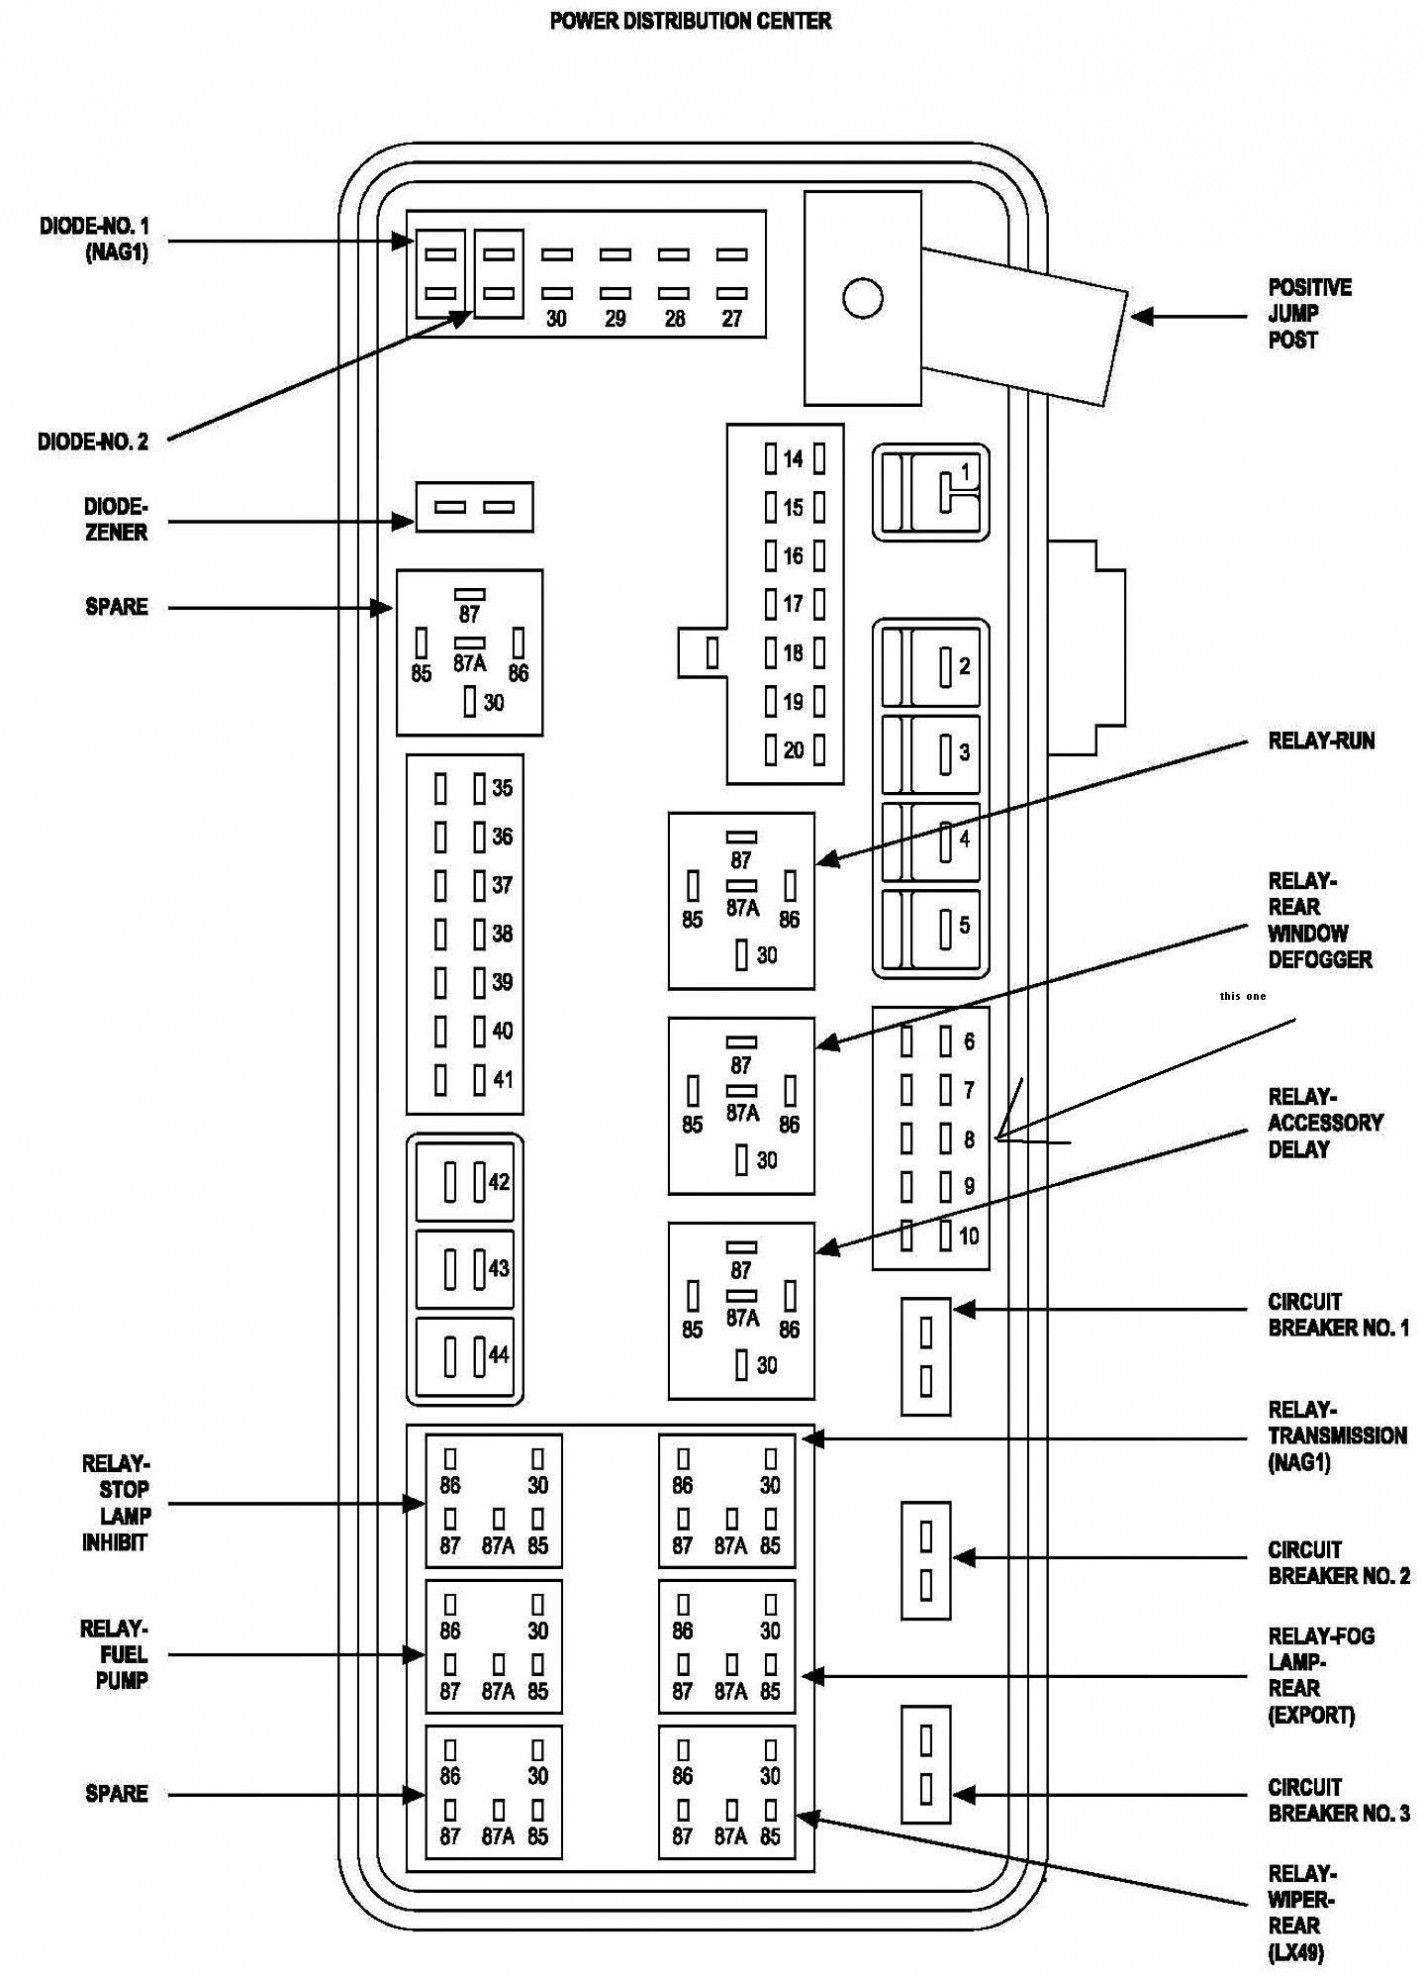 medium resolution of new 2004 dodge ram 1500 infinity wiring diagram diagramnew 2004 dodge ram 1500 infinity wiring diagram